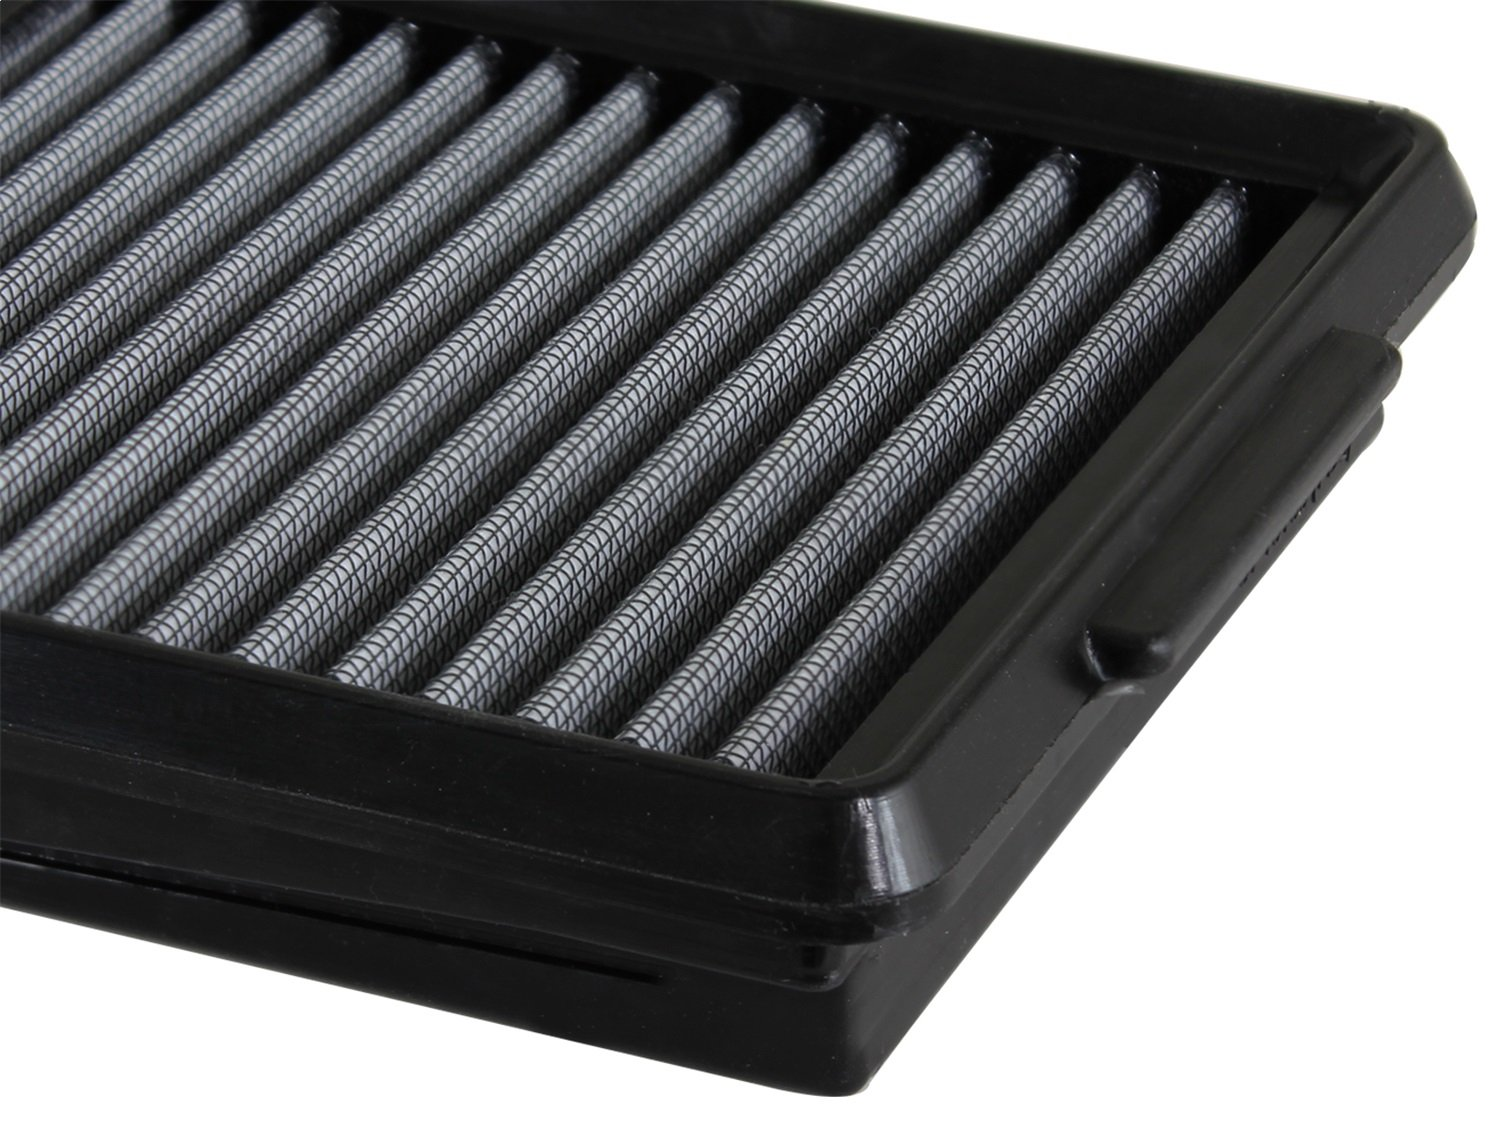 aFe 31-10166 Magnum FLOW Pro Dry S OE Replacement Air Filter for Nissan GT-R V6-3.8L Engine